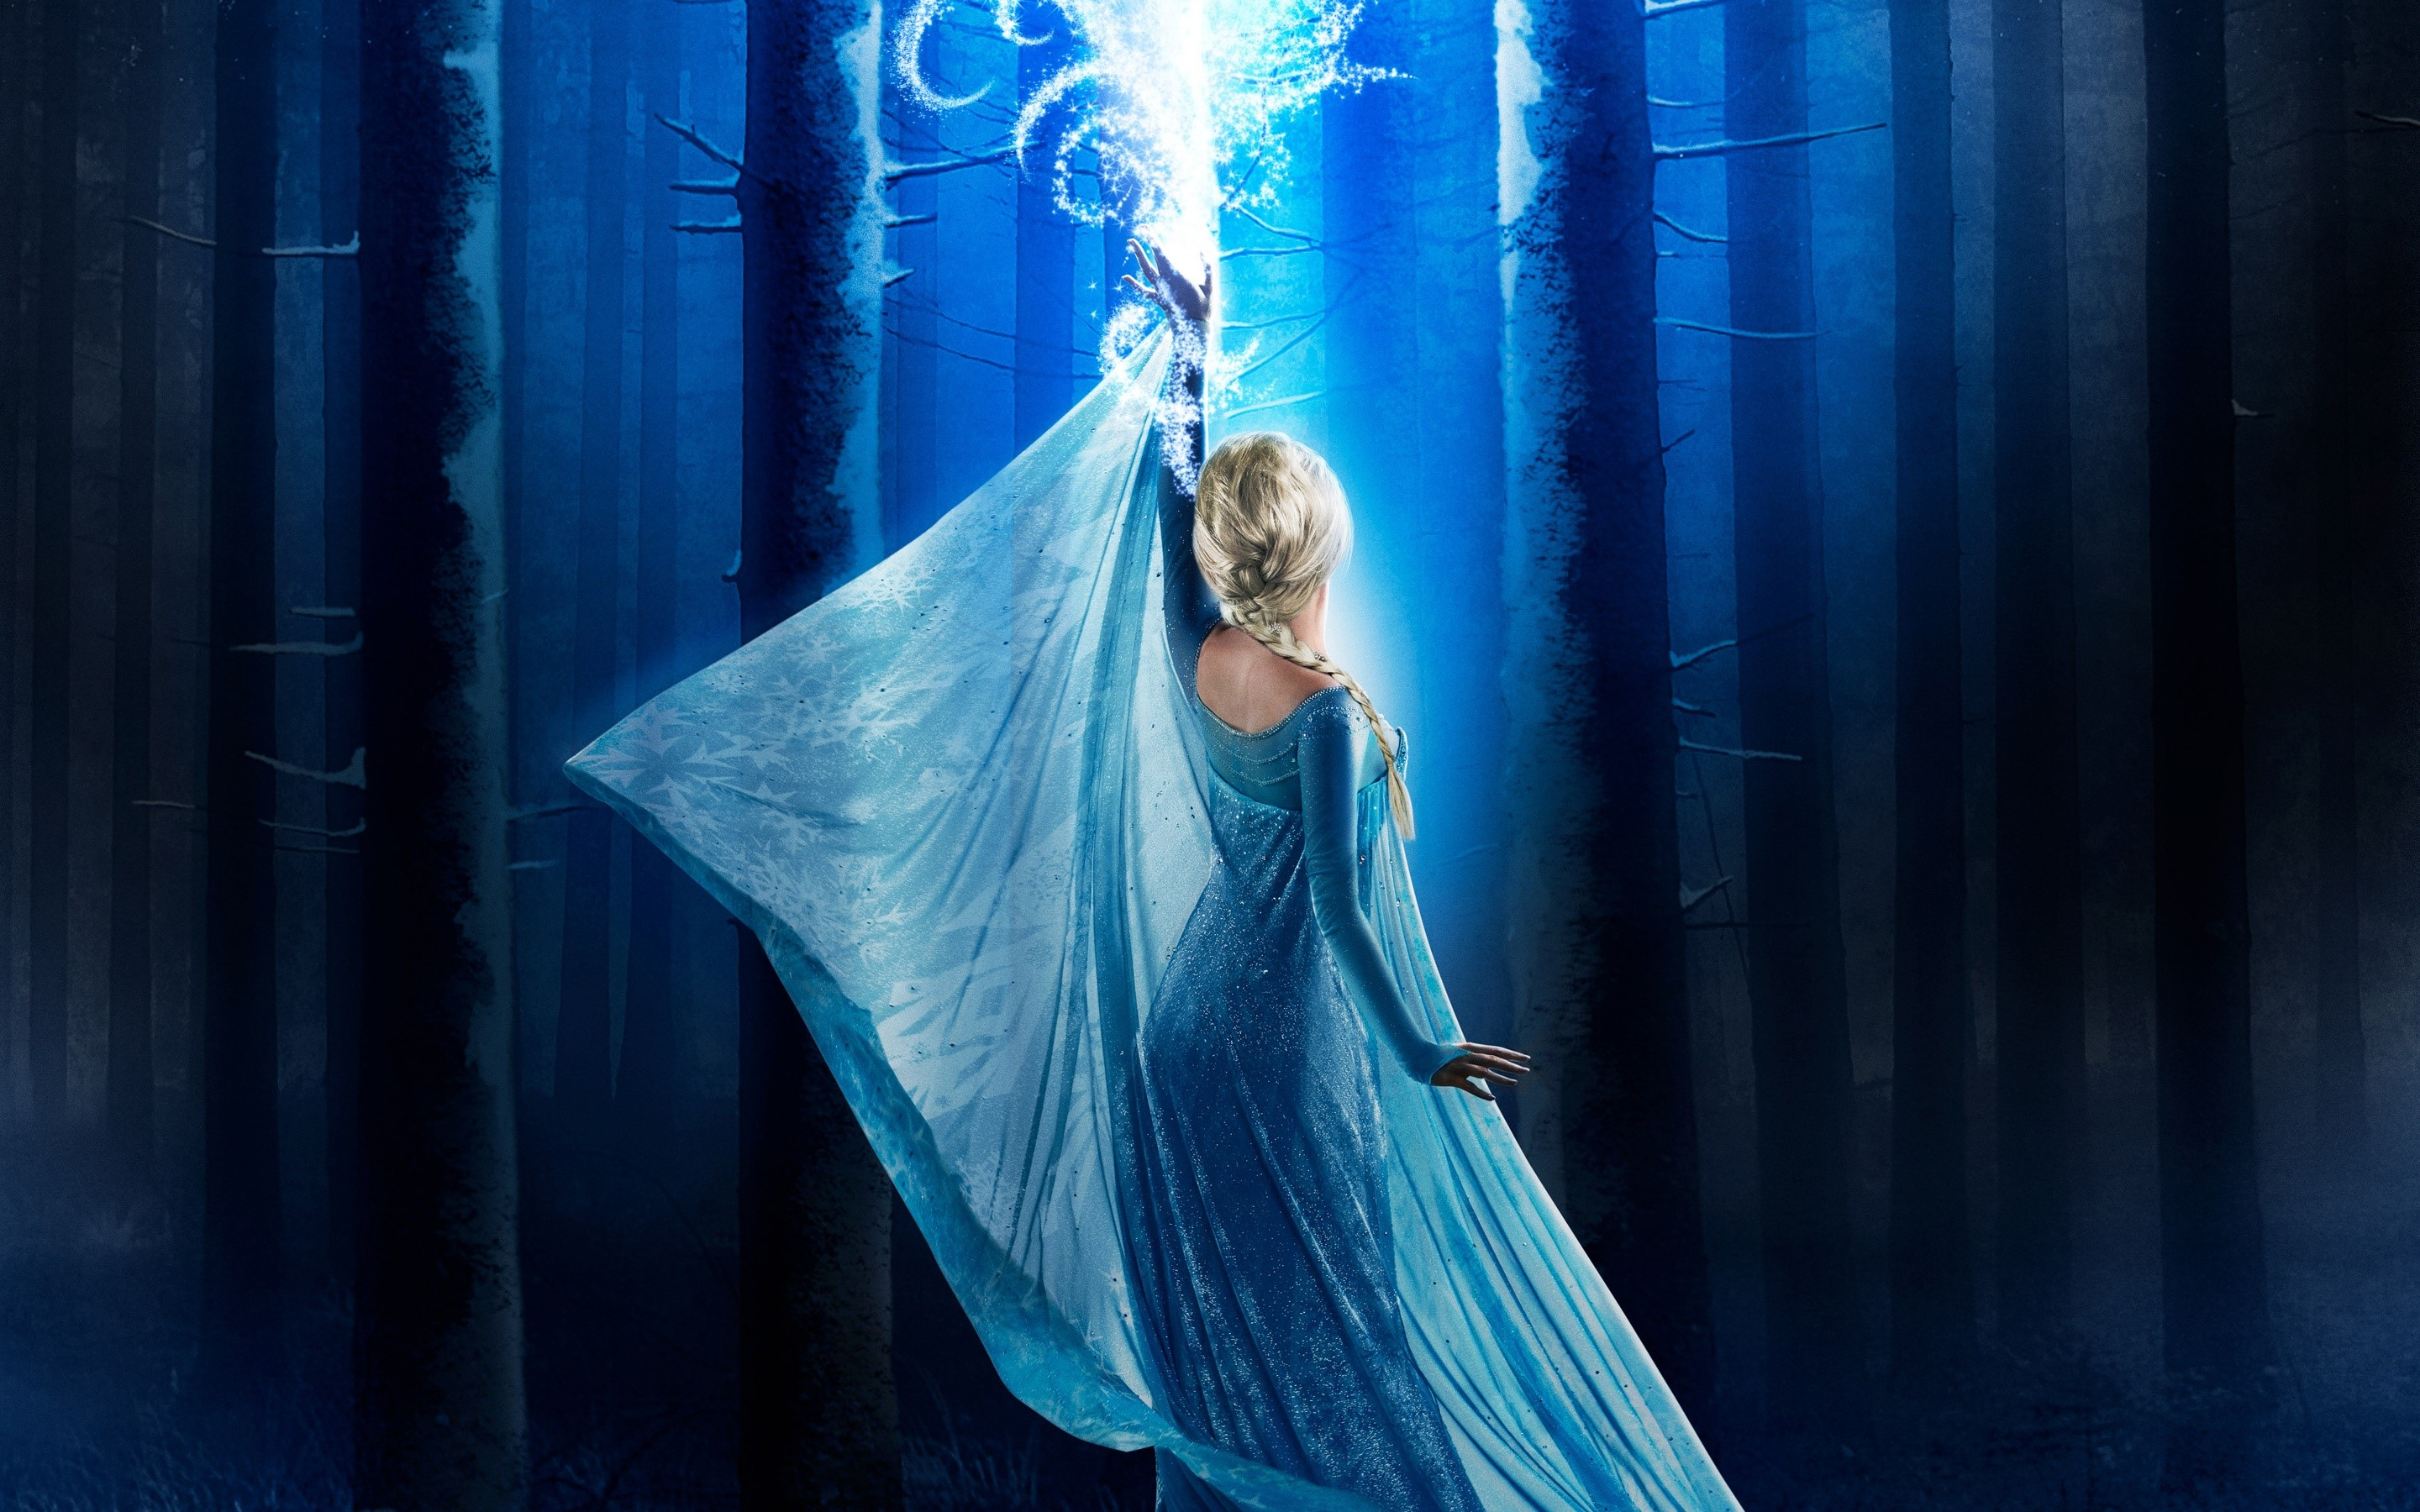 Wallpaper Elsa in Once upon a time